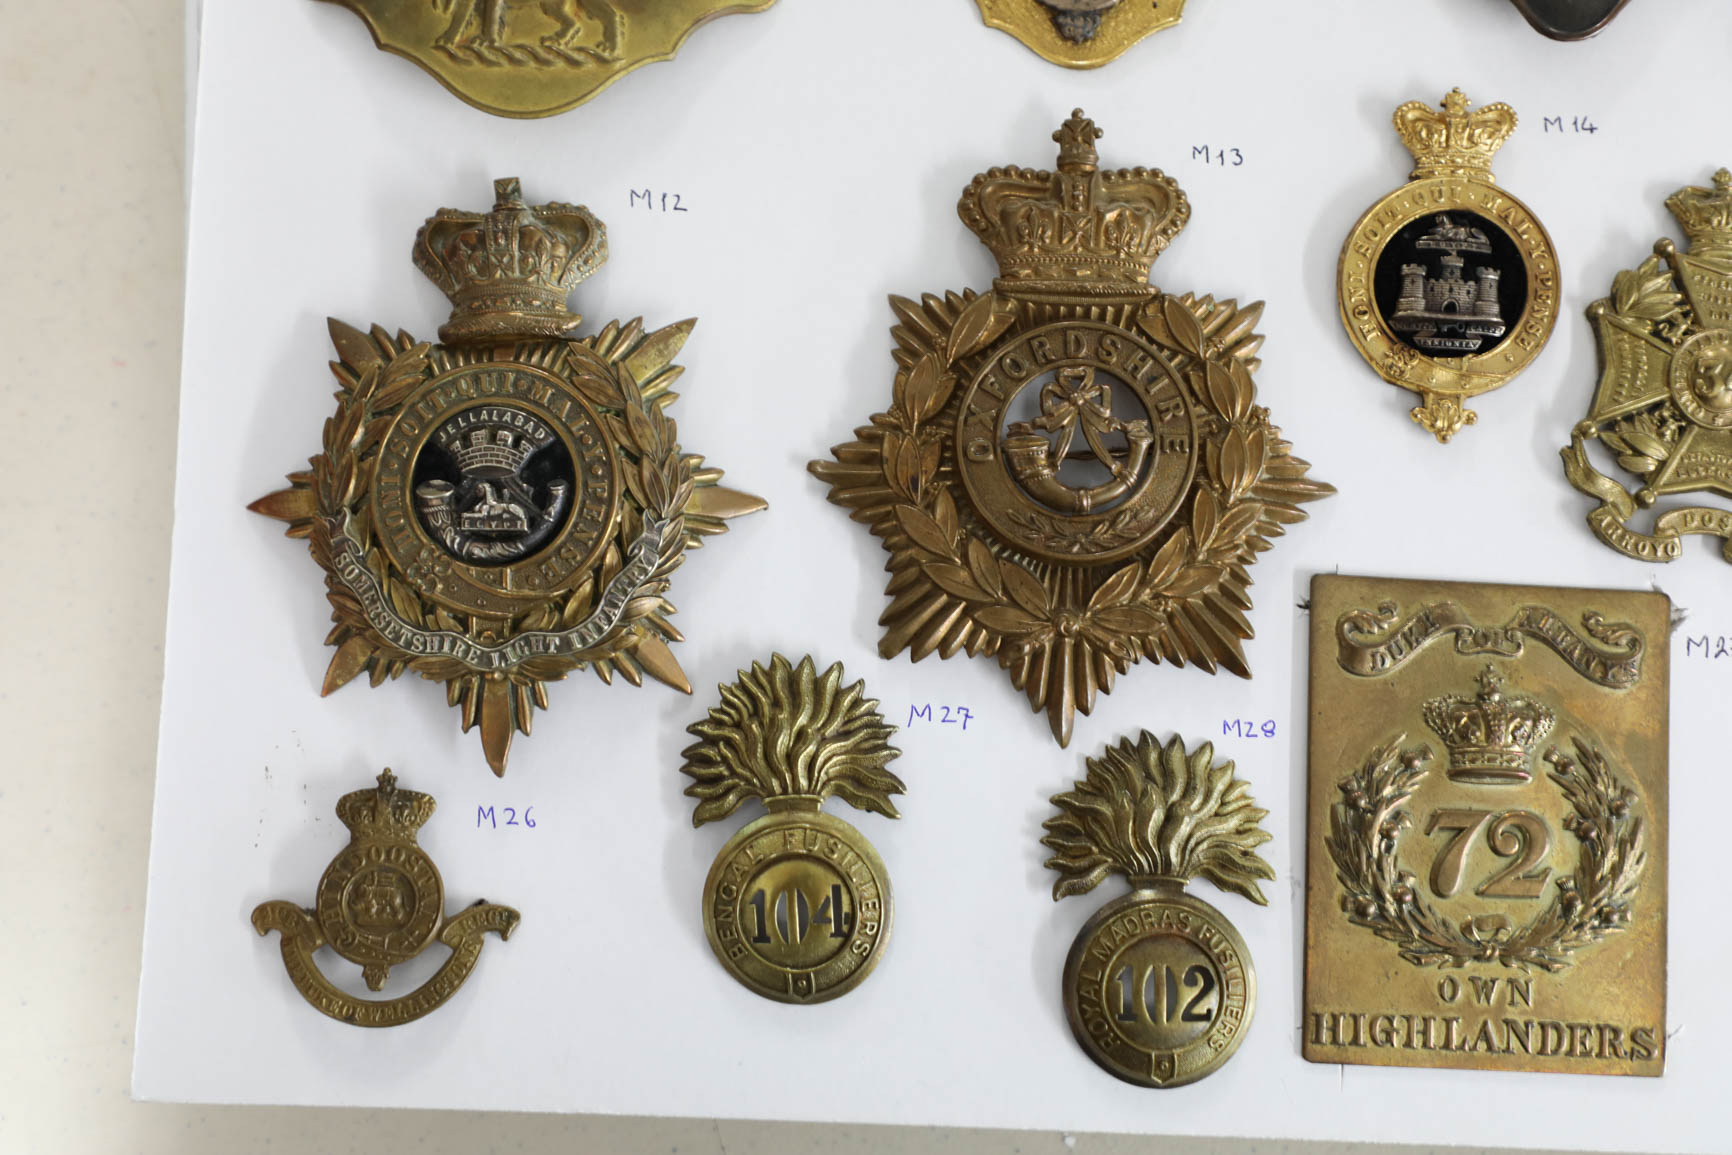 Lot 013 - A collection of approx. 28 military cap badges mostly 19th century including a Standard British Army